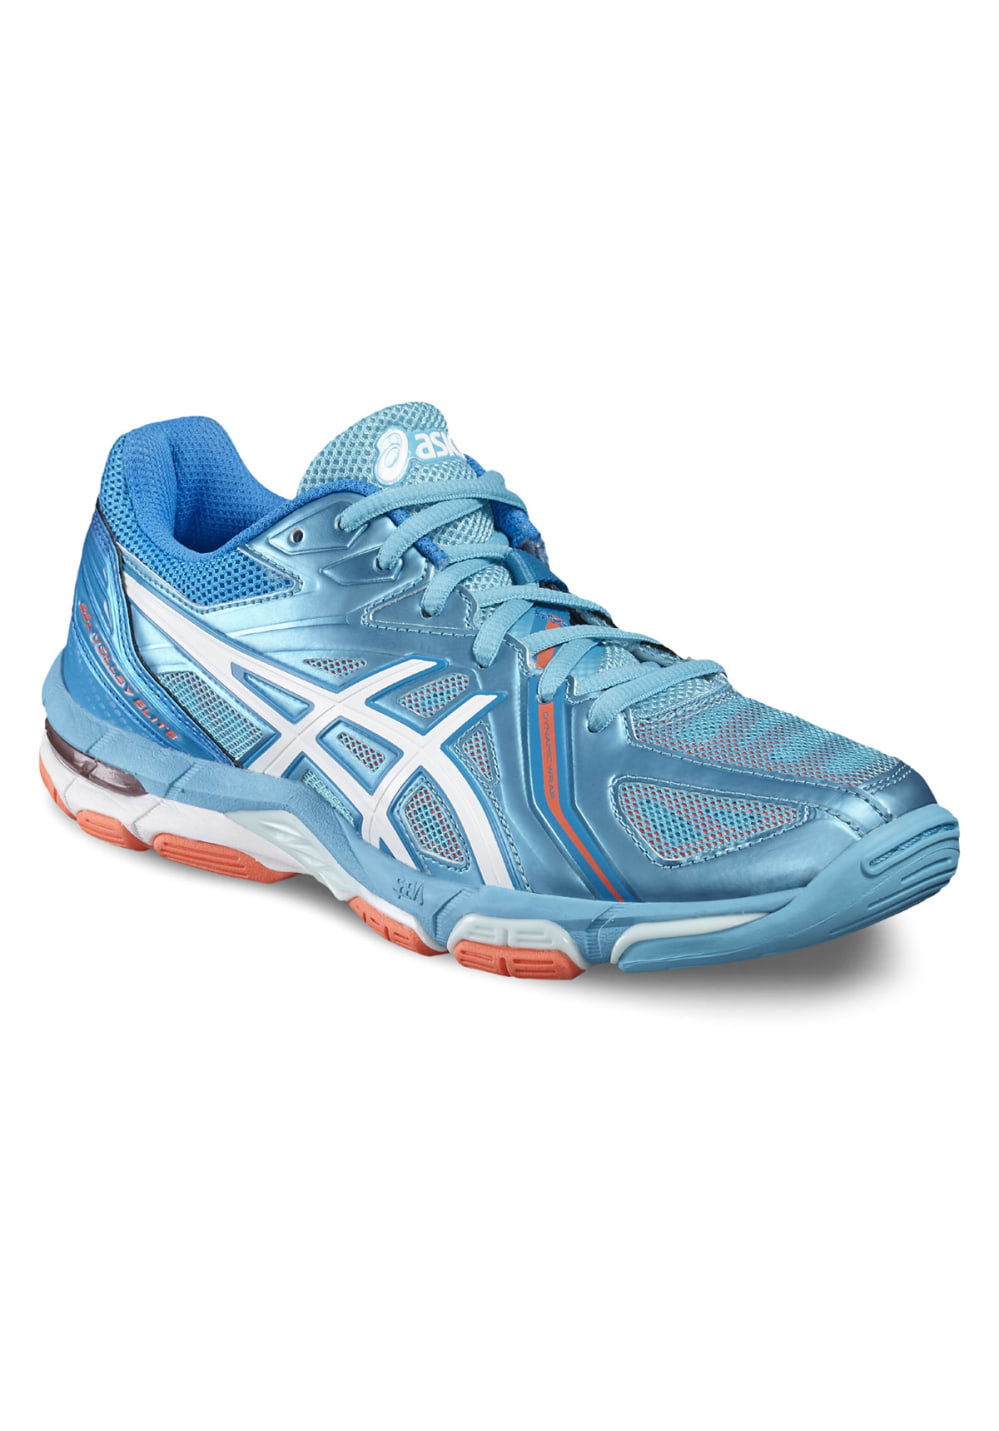 ASICS GEL Volley Elite 3 Volleyball shoes for Women Blue